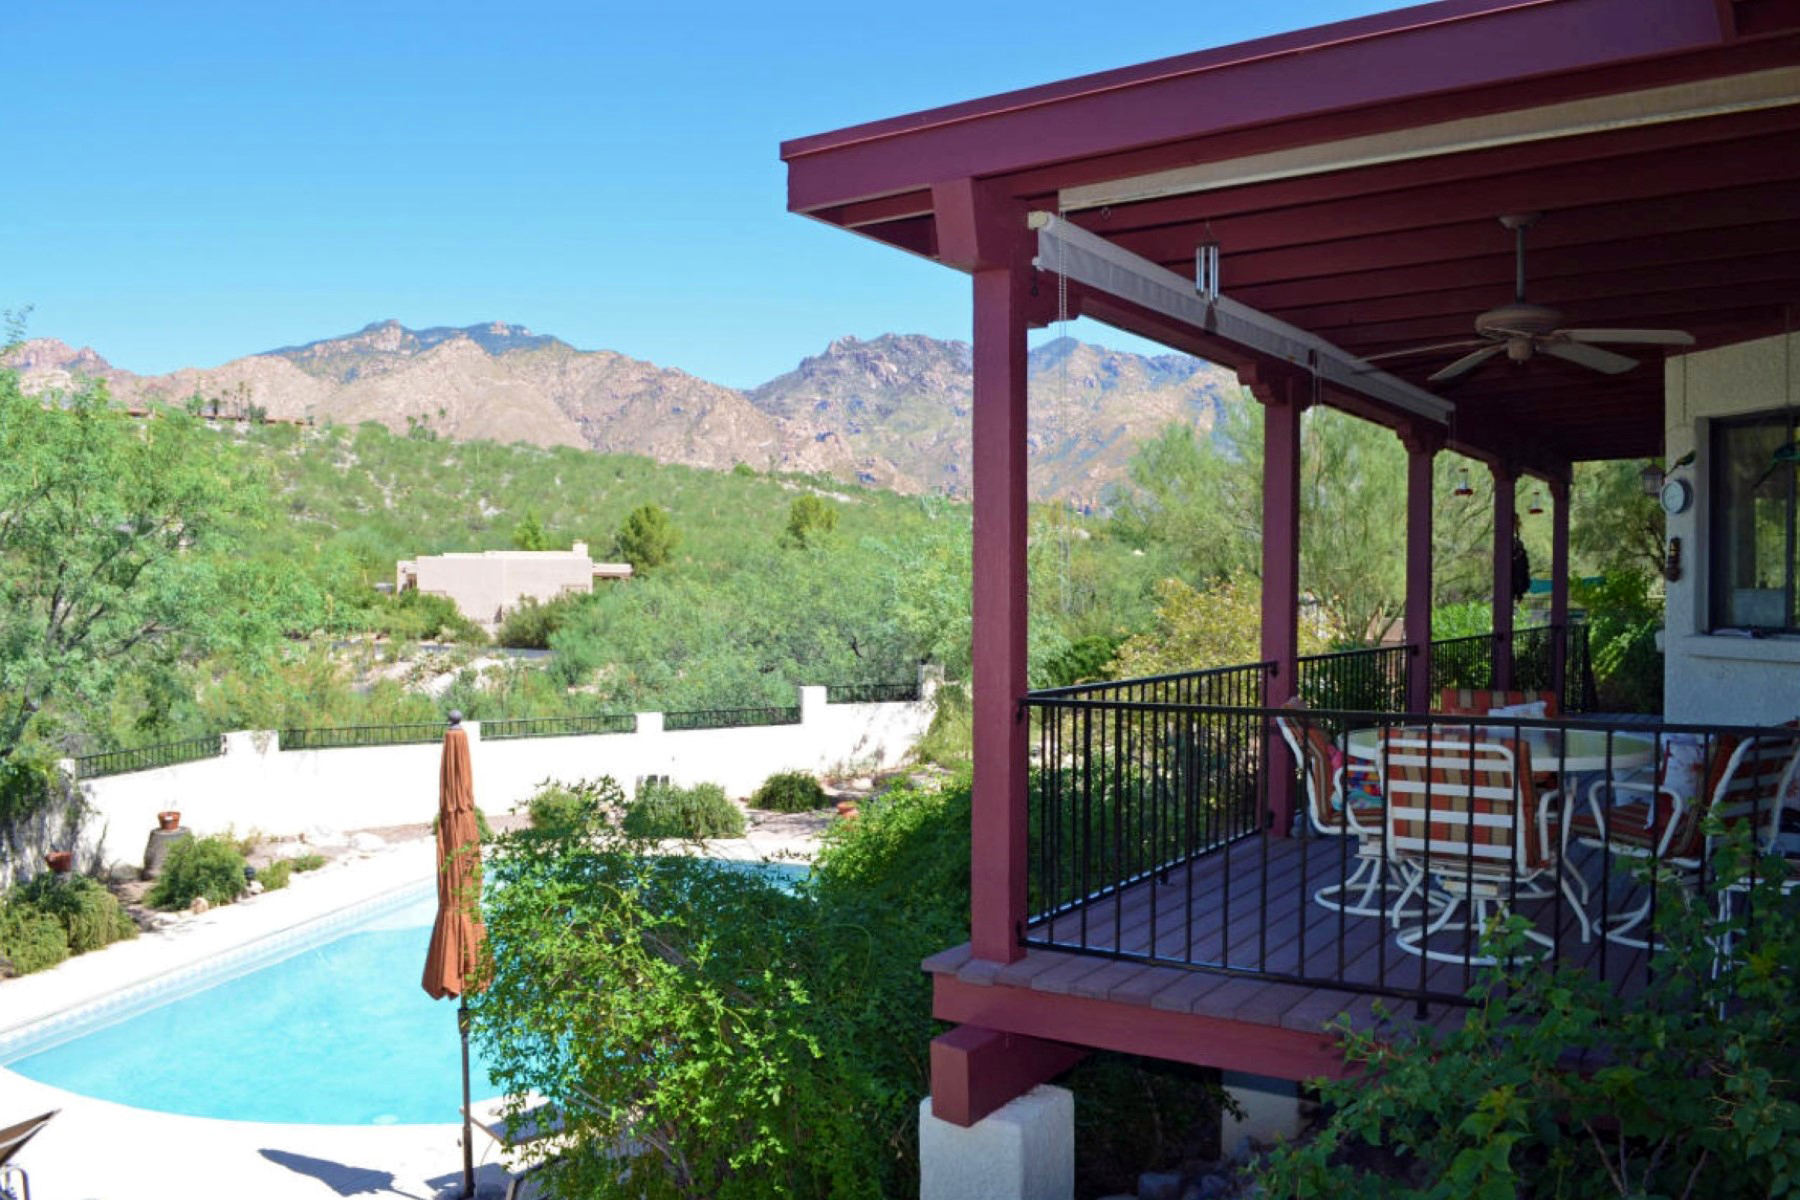 Property For Sale at Stunning Home With Incredible Views Of The Catalina Mountains